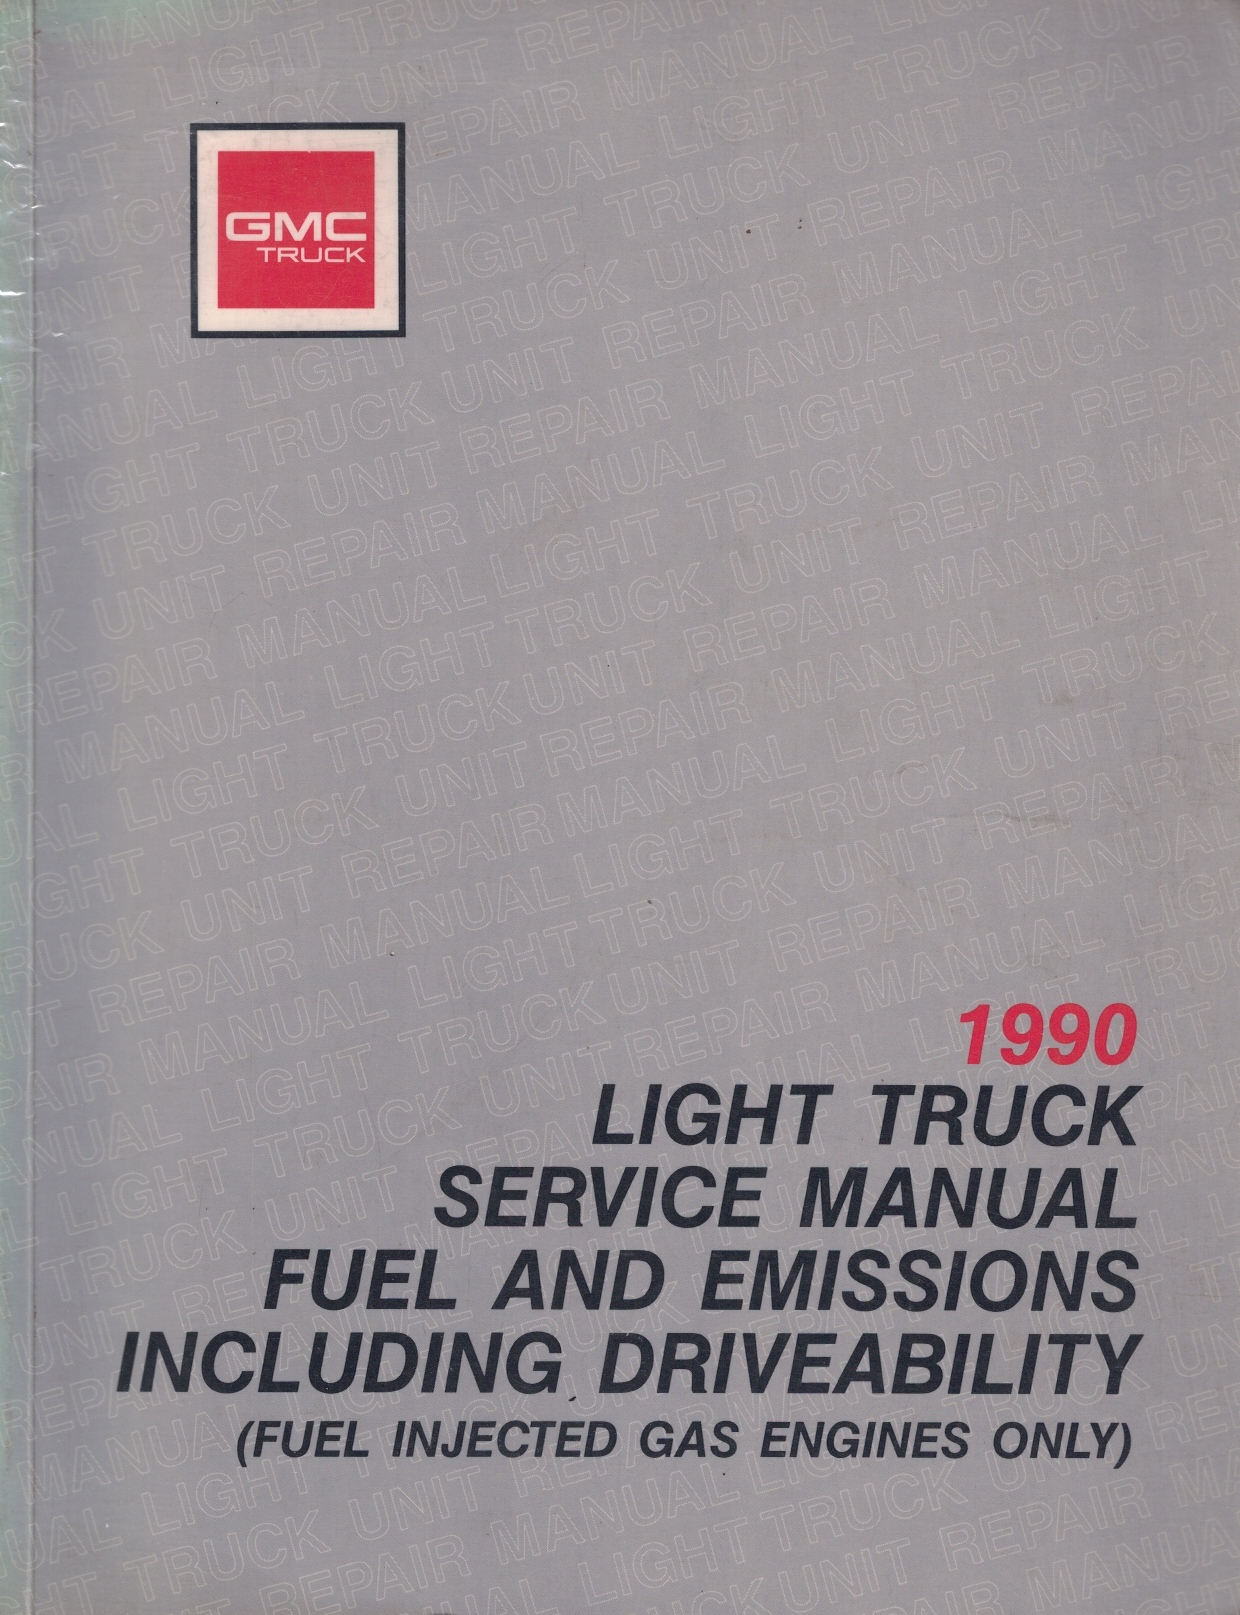 Image for 1990 GMC Light Truck Service Manual, Fuel and Emissions Including Driveability (Fuel Injected Gas Engines Only)